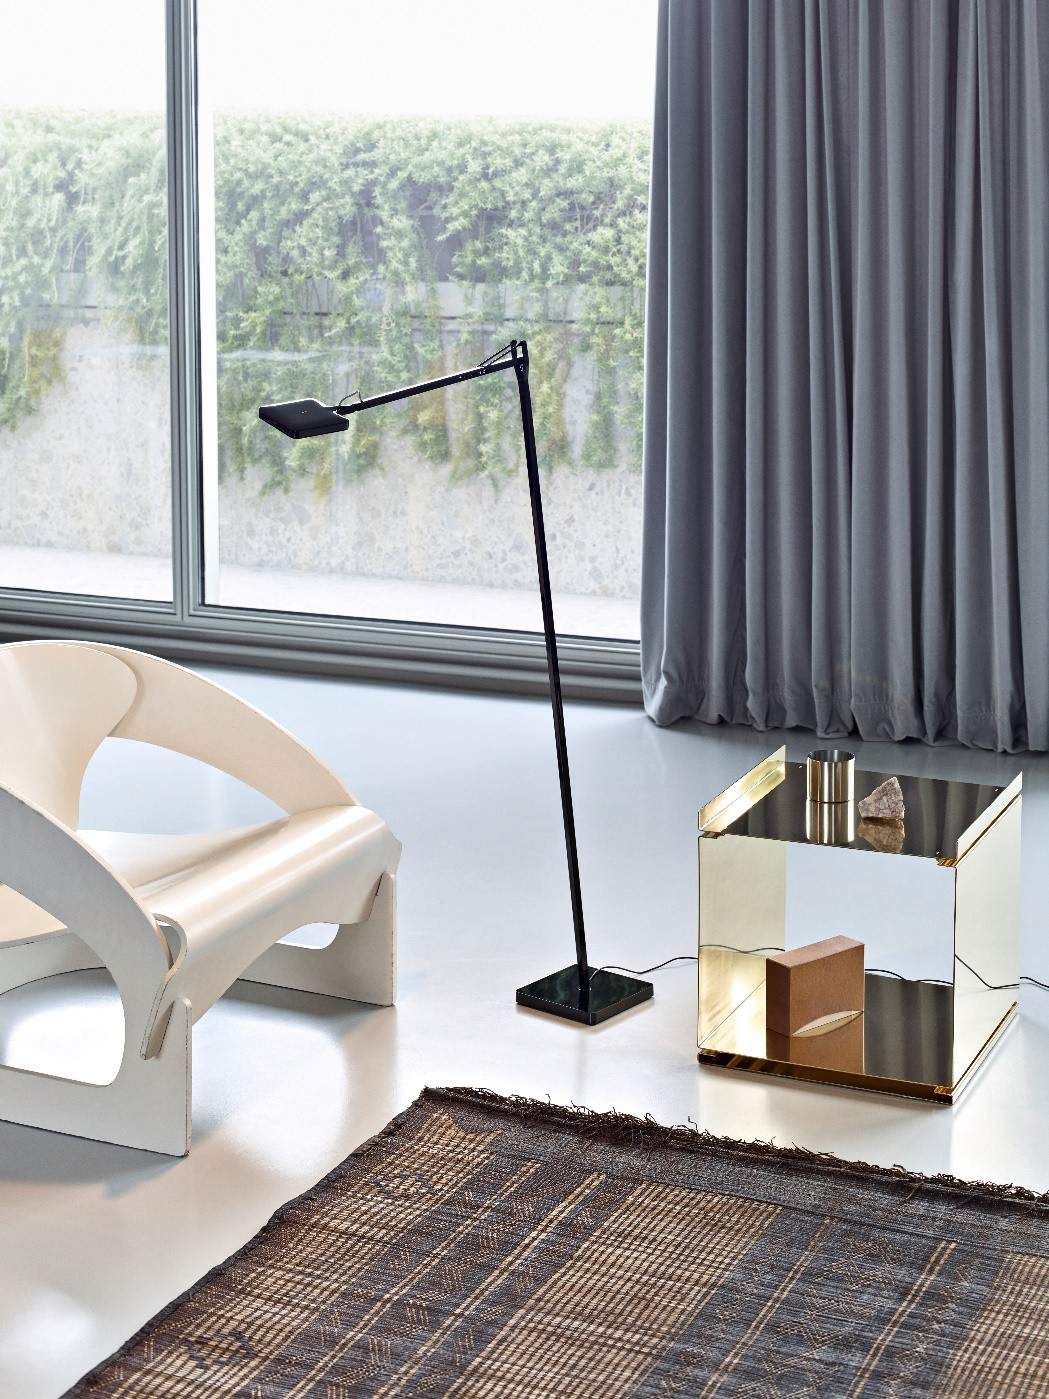 Lighting for homes Beautiful In Just The Past Few Years Led Lighting For Homes Has Become Popular For Its Costsaving Energy Efficiency The Low Power Consumption Reflected In Your Wrinklestop At Home With Led Flos Usa Inc